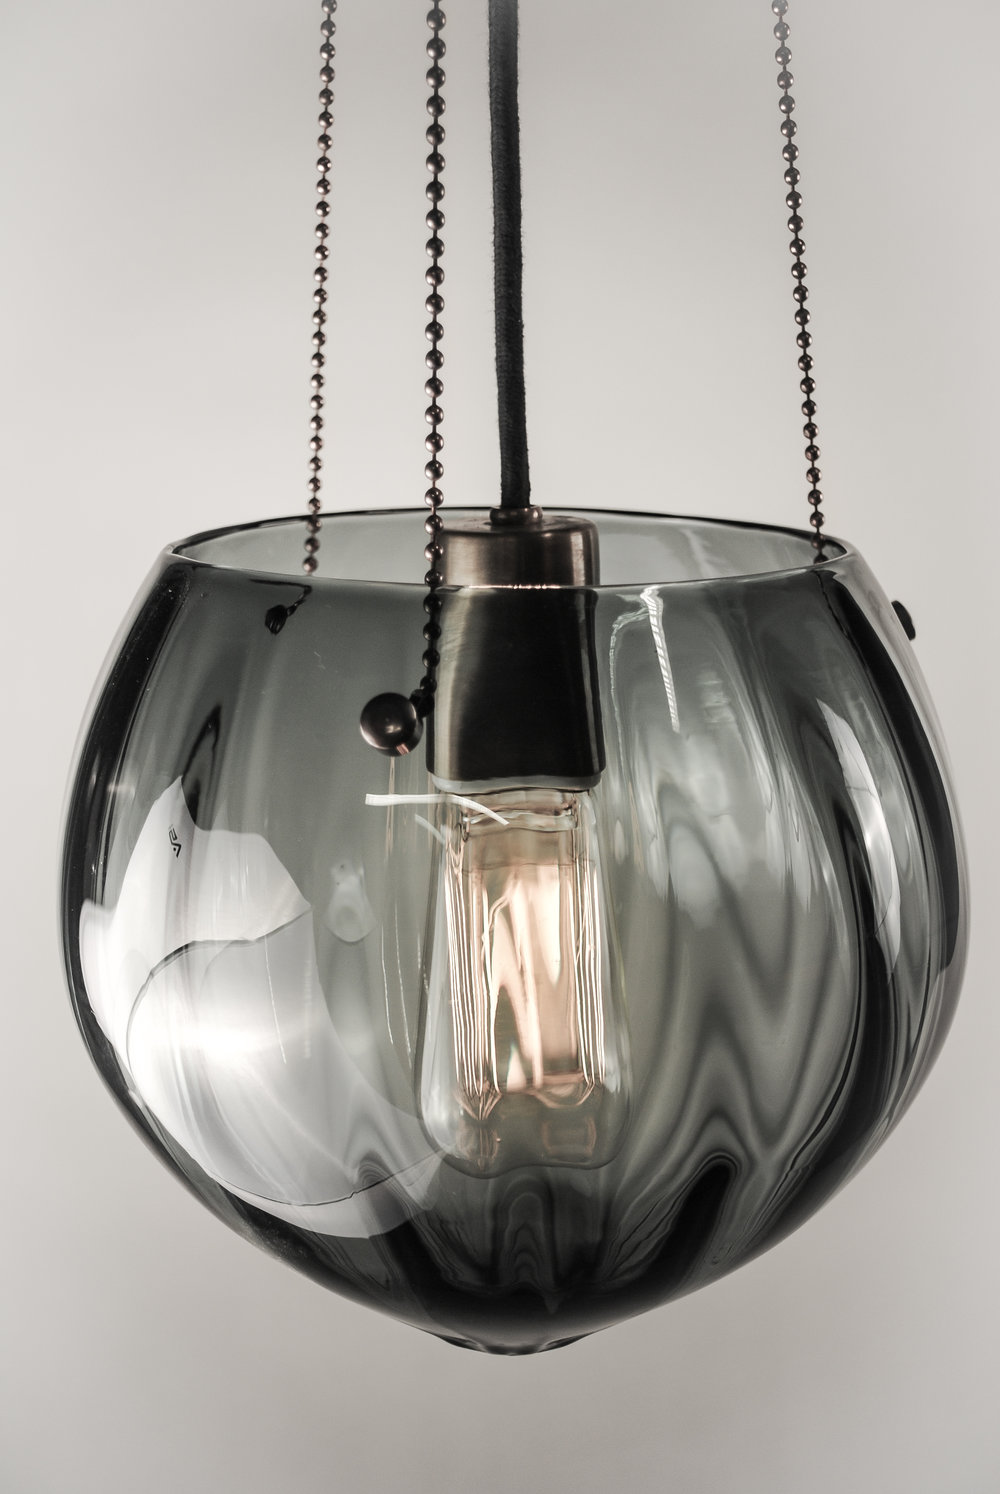 Shown in Dark Bronze and Gradient Grey Glass